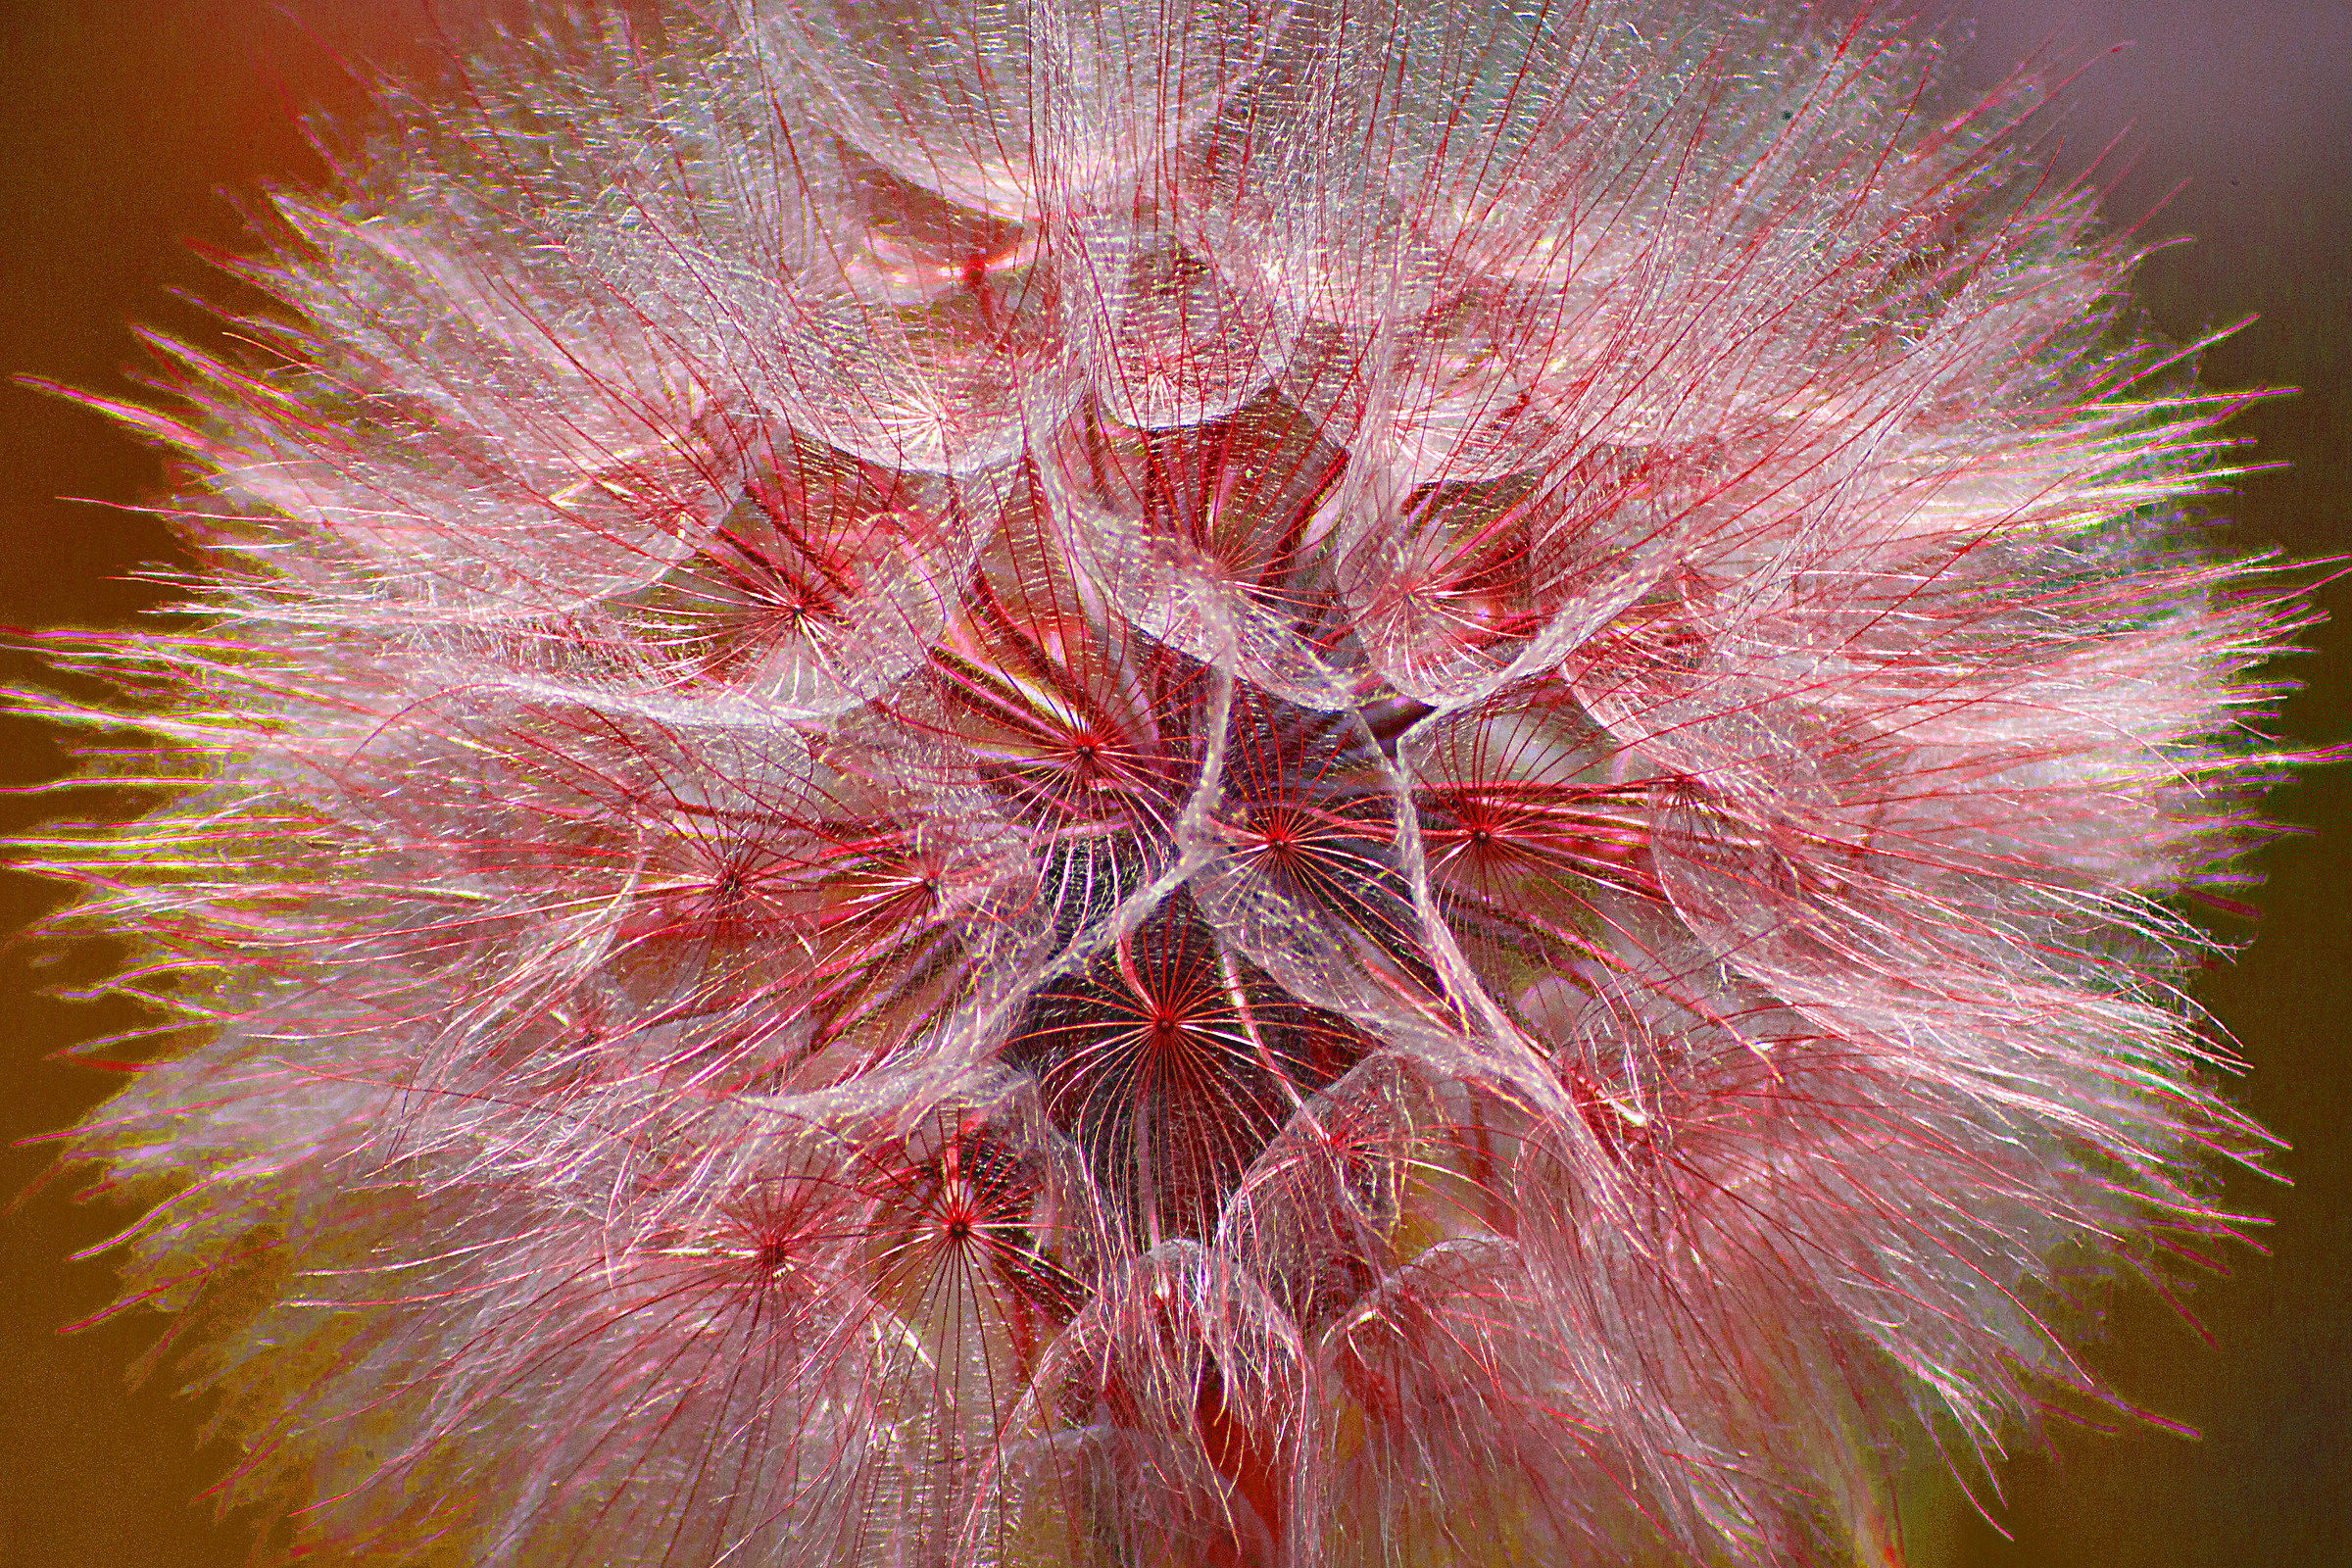 Artificial fireworks of nature...